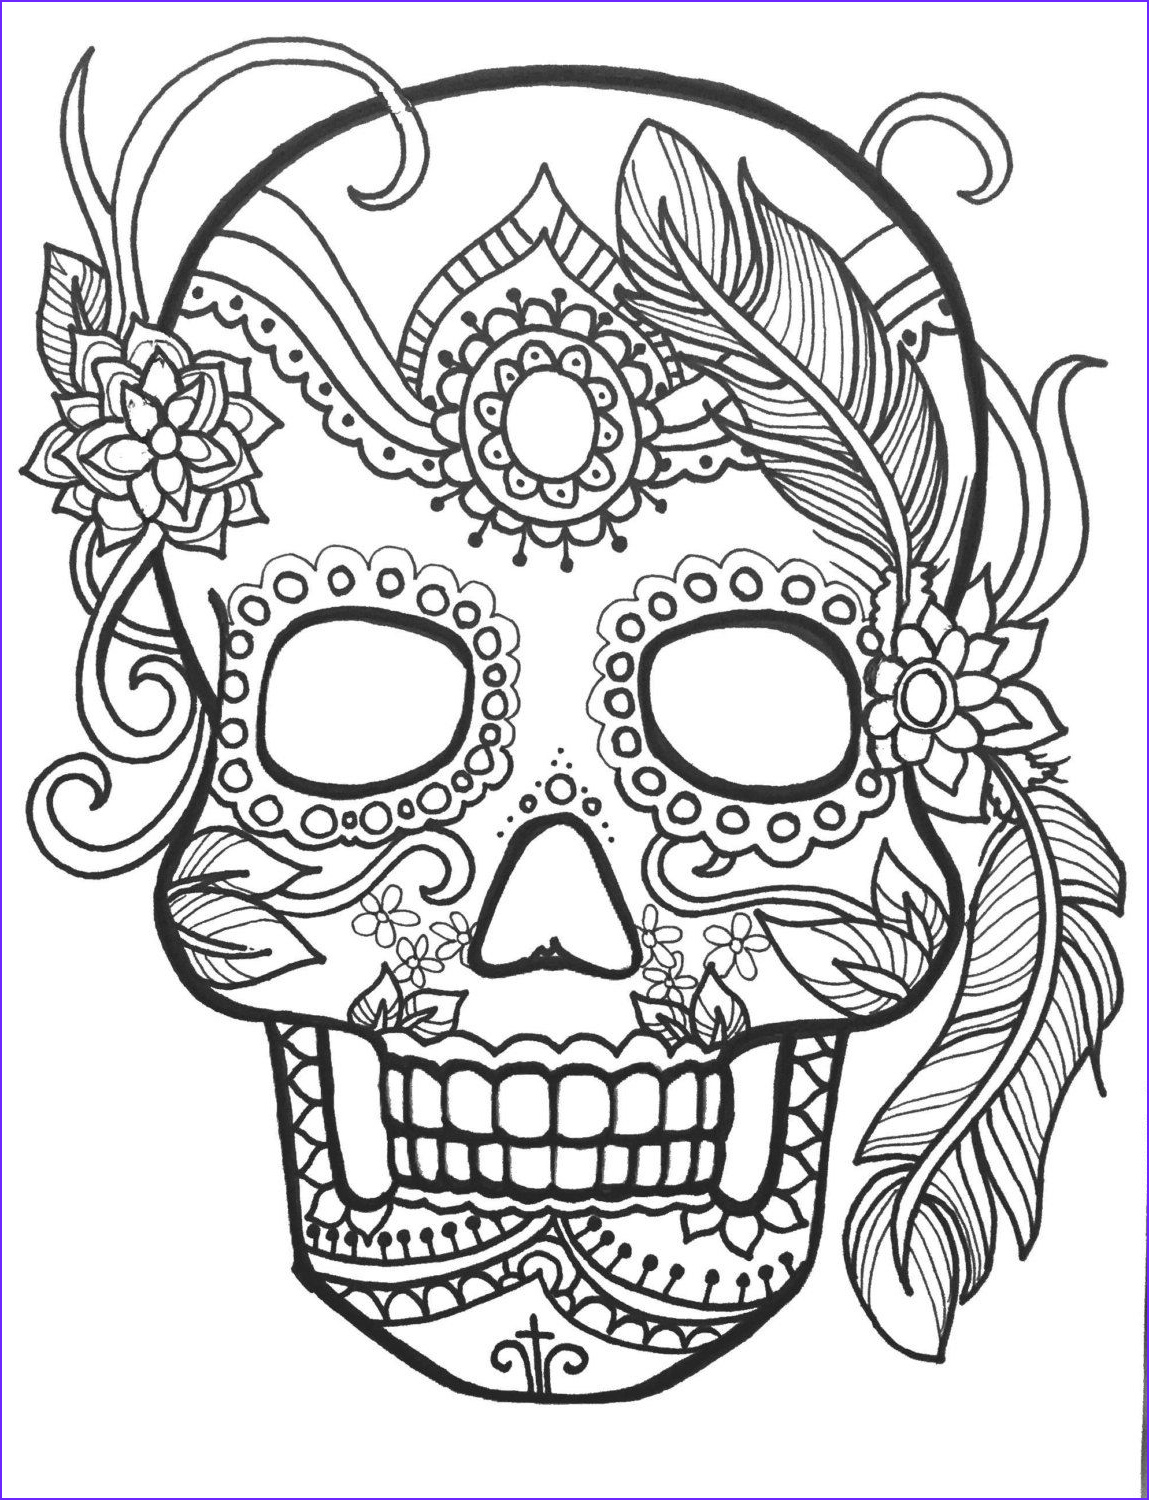 Skull Adult Coloring Page Best Of Collection 10 Sugar Skull Day Of The Dead Coloringpages Original Art